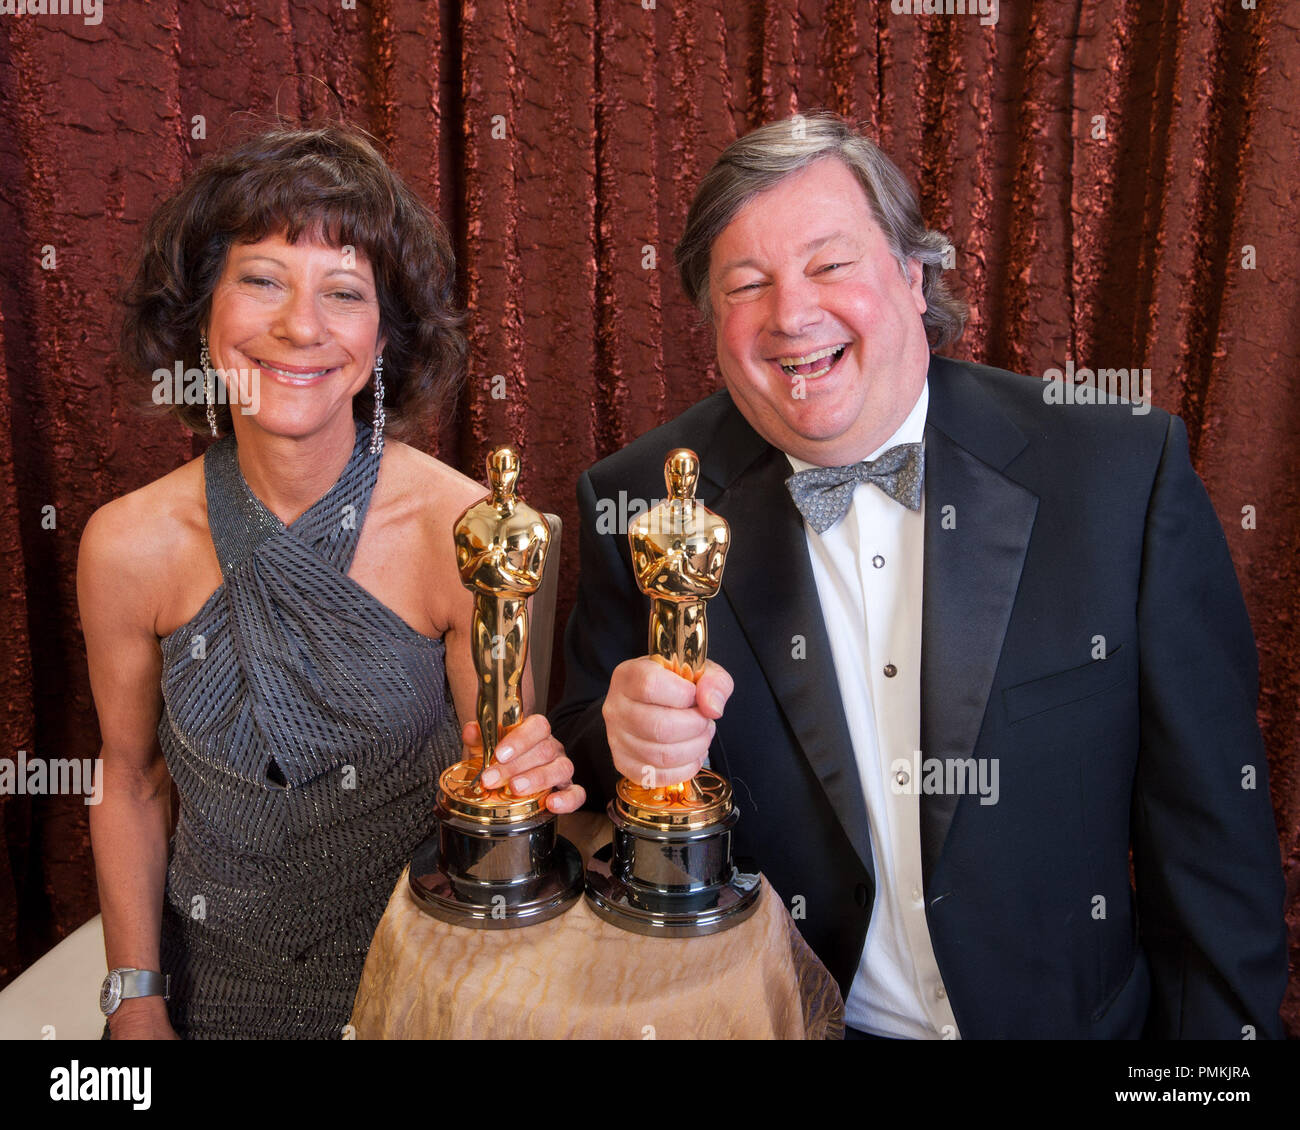 Oscar-winners for the category Best Documentary Short Subject for their work on 'Strangers No More,' Karen Goodman and Kirk Simon pose backstage during the live ABC Television Network broadcast of the 83rd Annual Academy Awards from the Kodak Theatre in Hollywood, CA Sunday, February 27, 2011.  File Reference # 30871_456  For Editorial Use Only -  All Rights Reserved - Stock Image